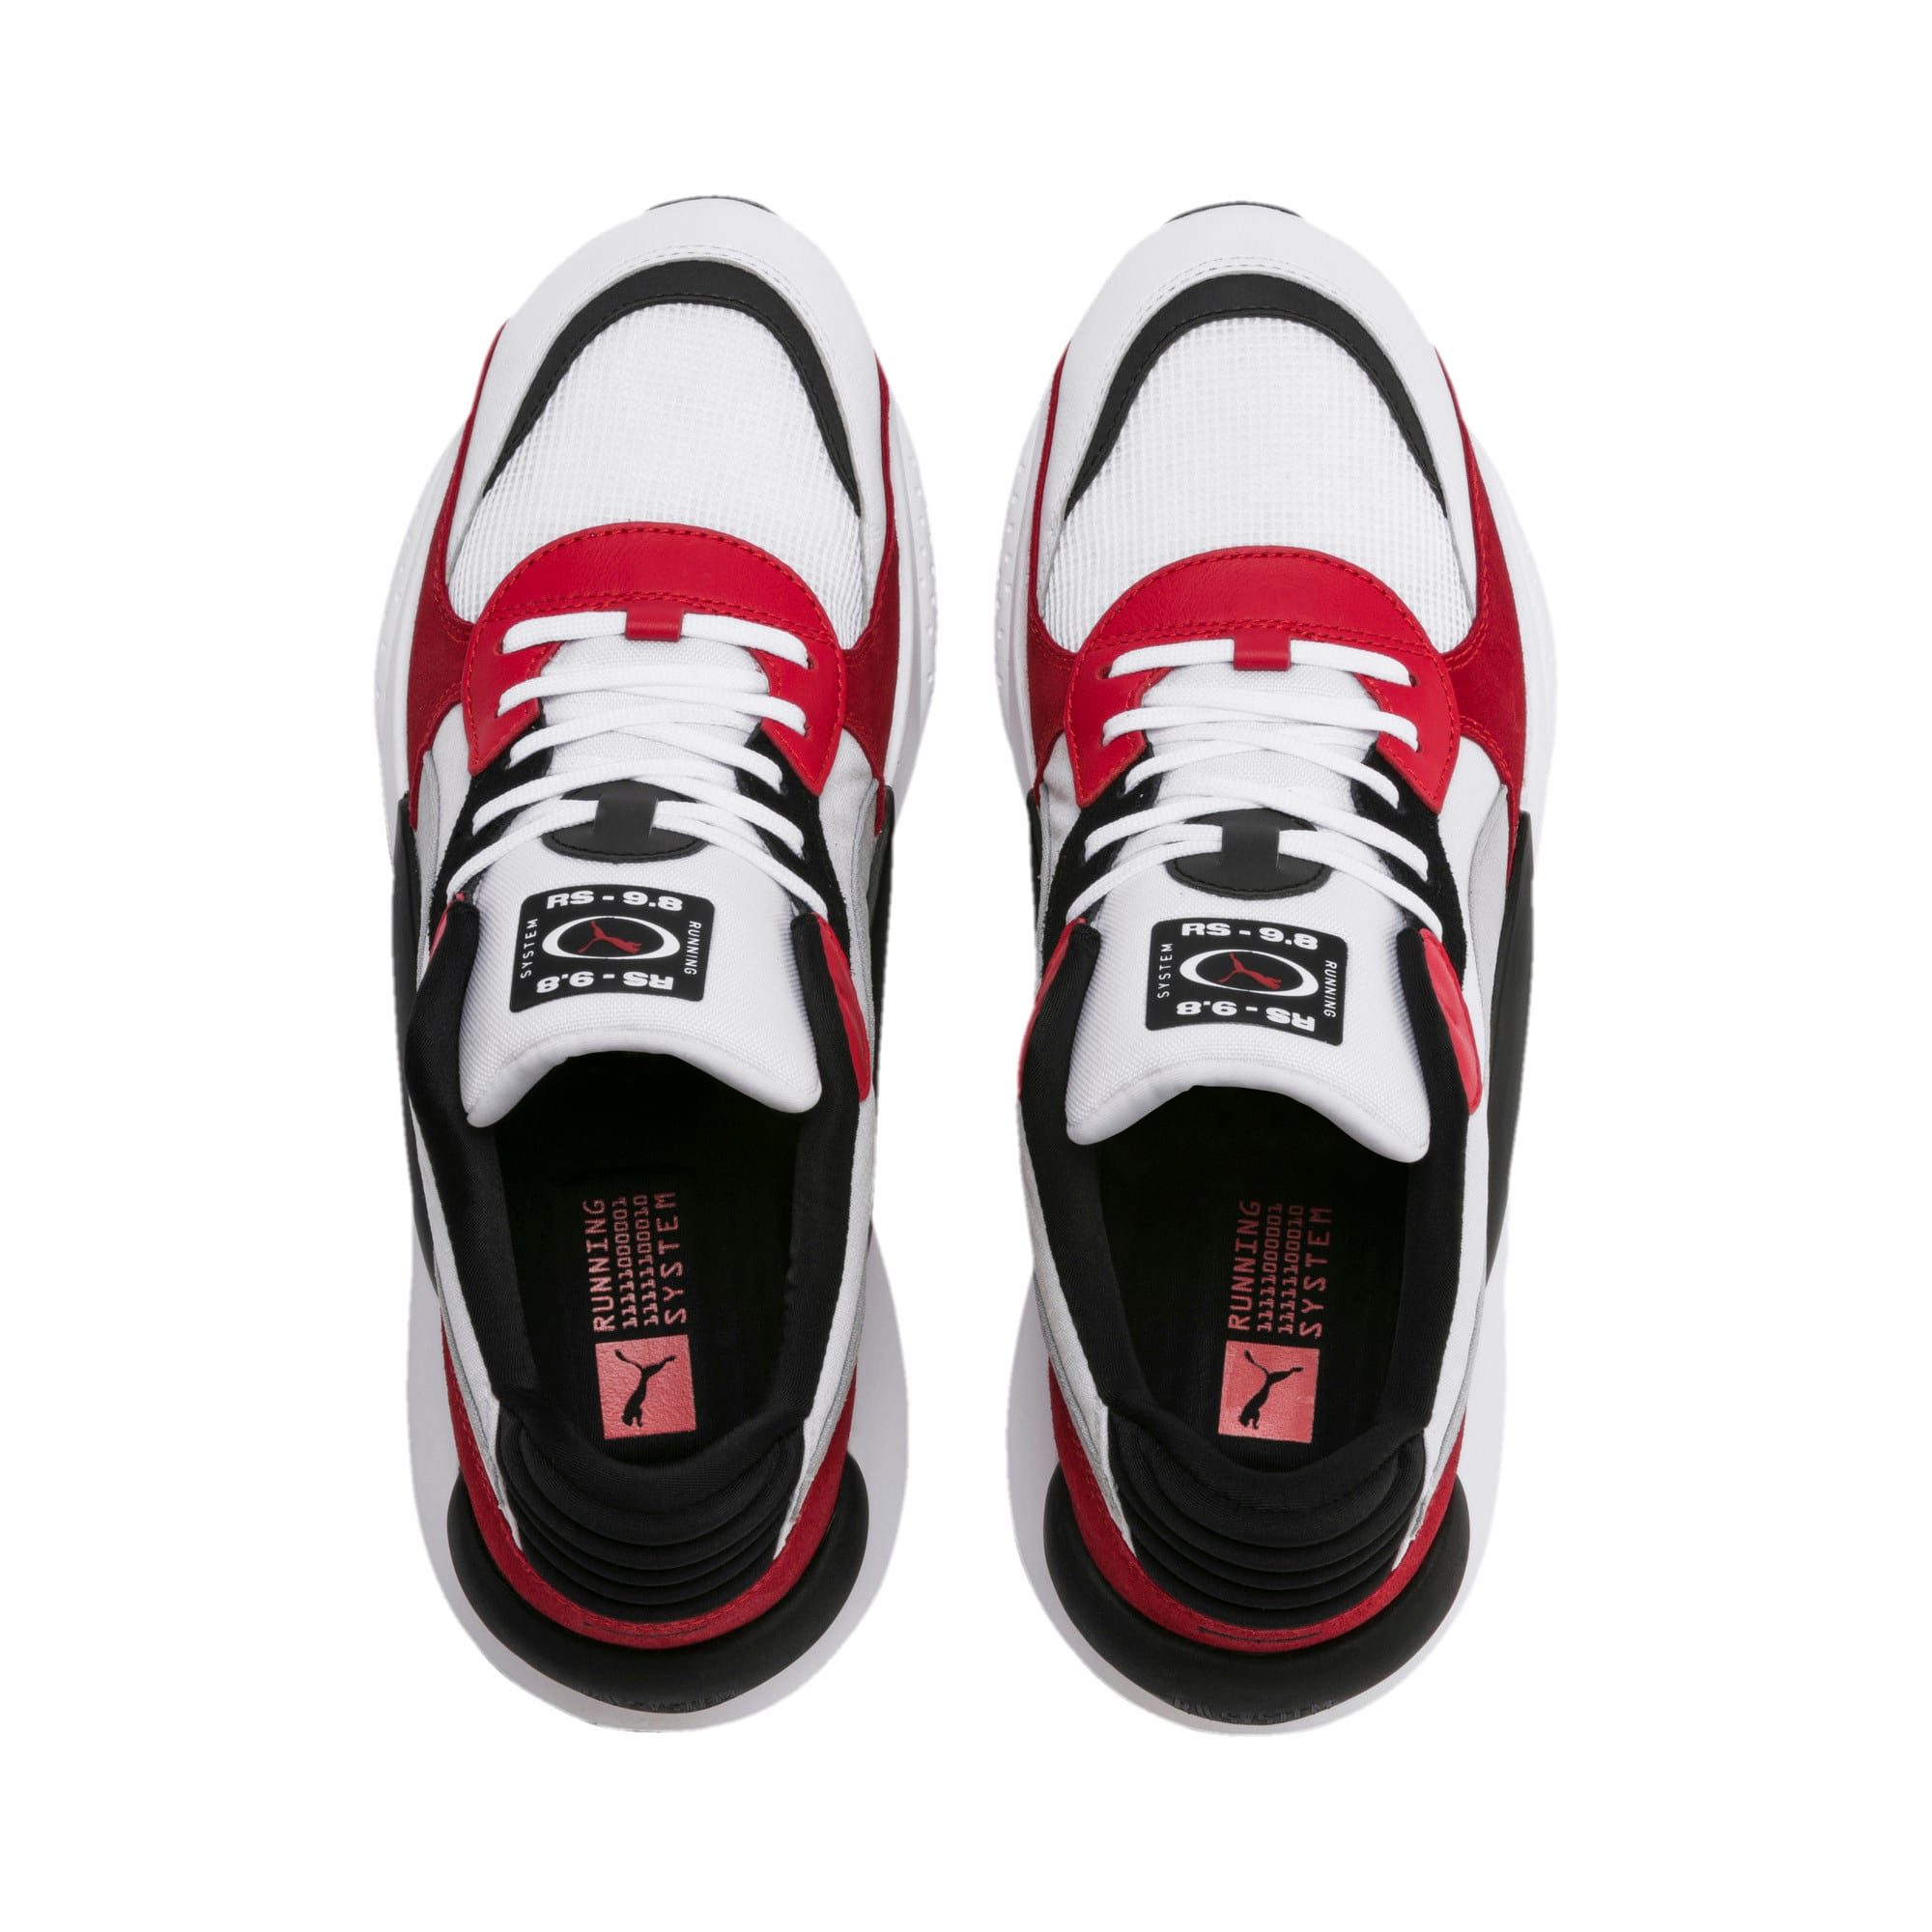 Thumbnail 8 of RS 9.8 Space Trainers, Puma White-High Risk Red, medium-IND